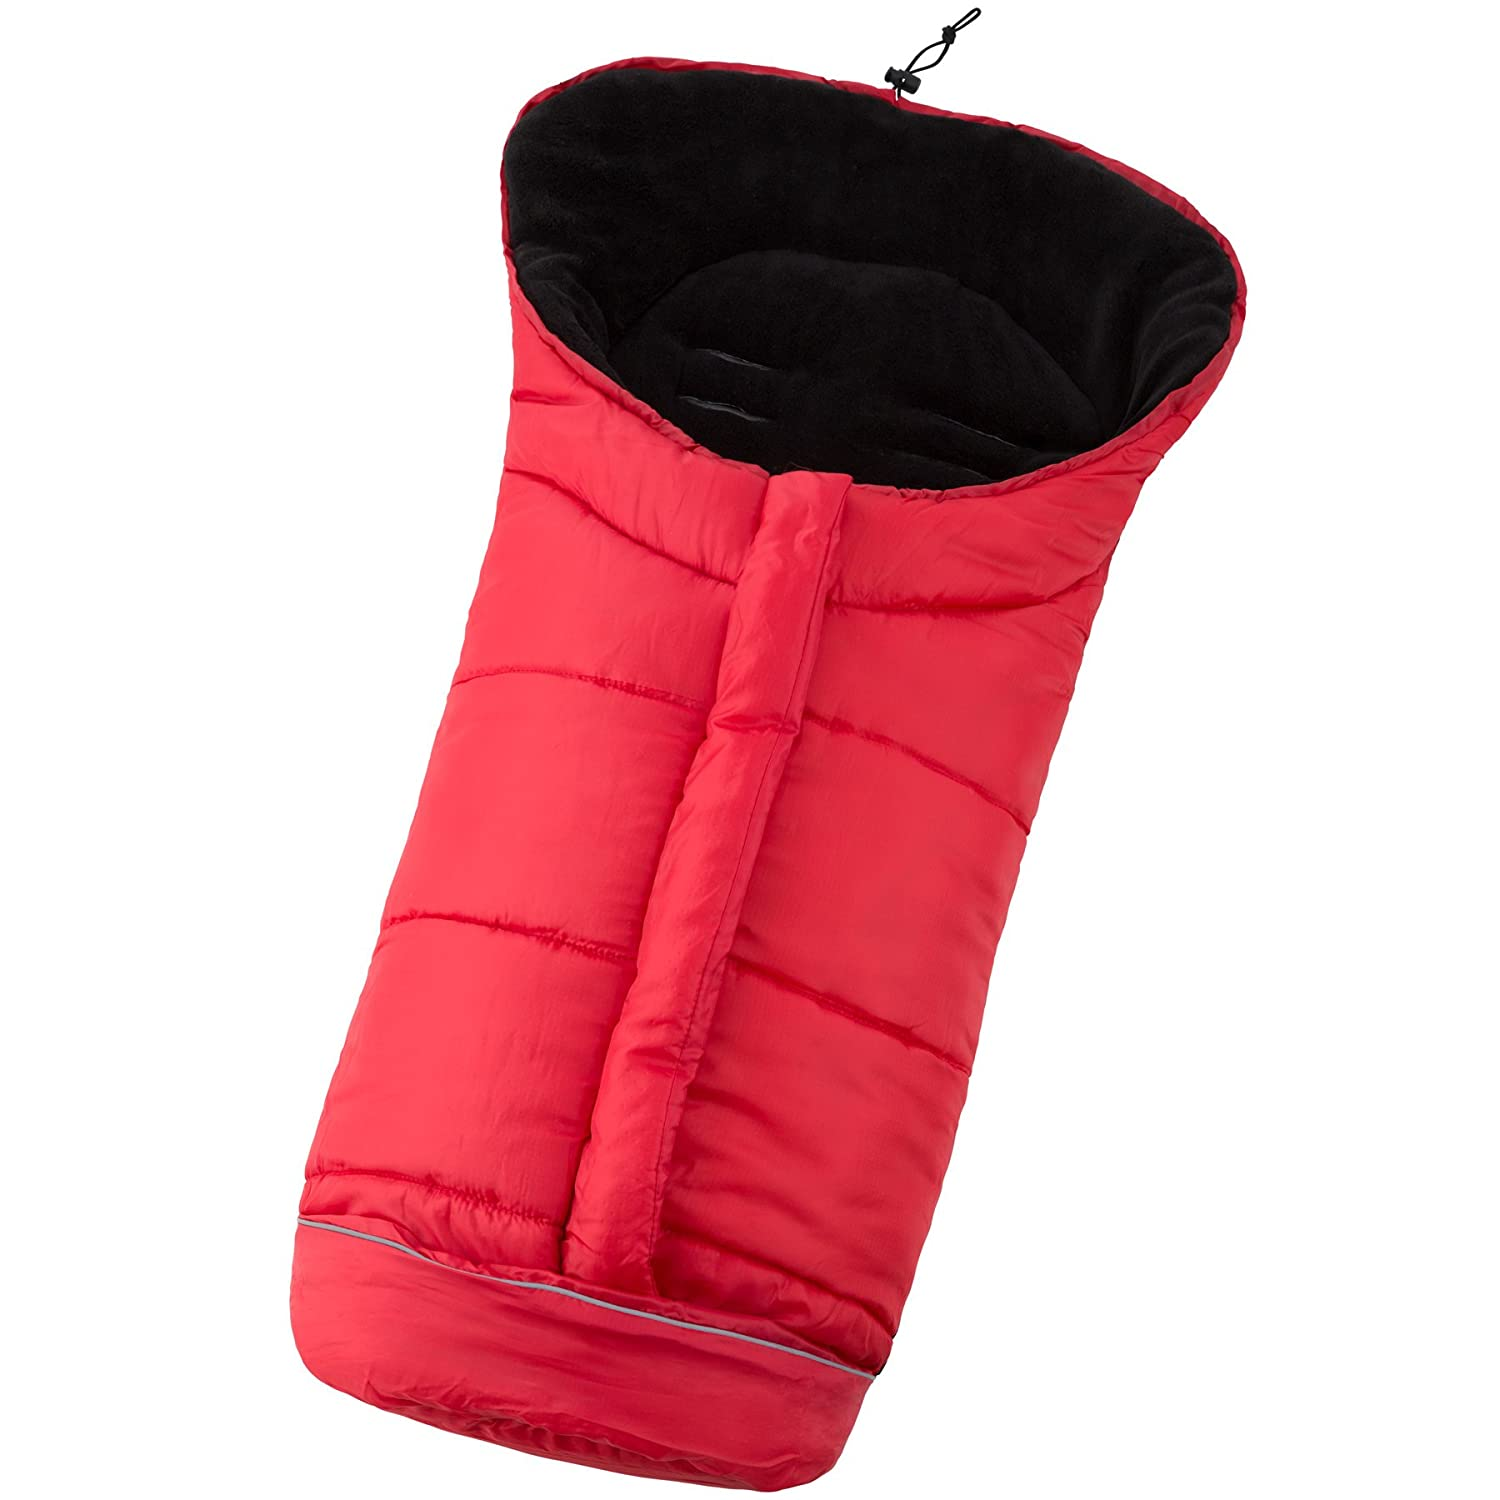 Baby Pushchair Footmuff Warm Toe Cover Winter Windproof Warmth Sleeping Bag Windproof Warm Thermal Lining Baby Socks 2019 New Fashion Style Online Activity & Gear